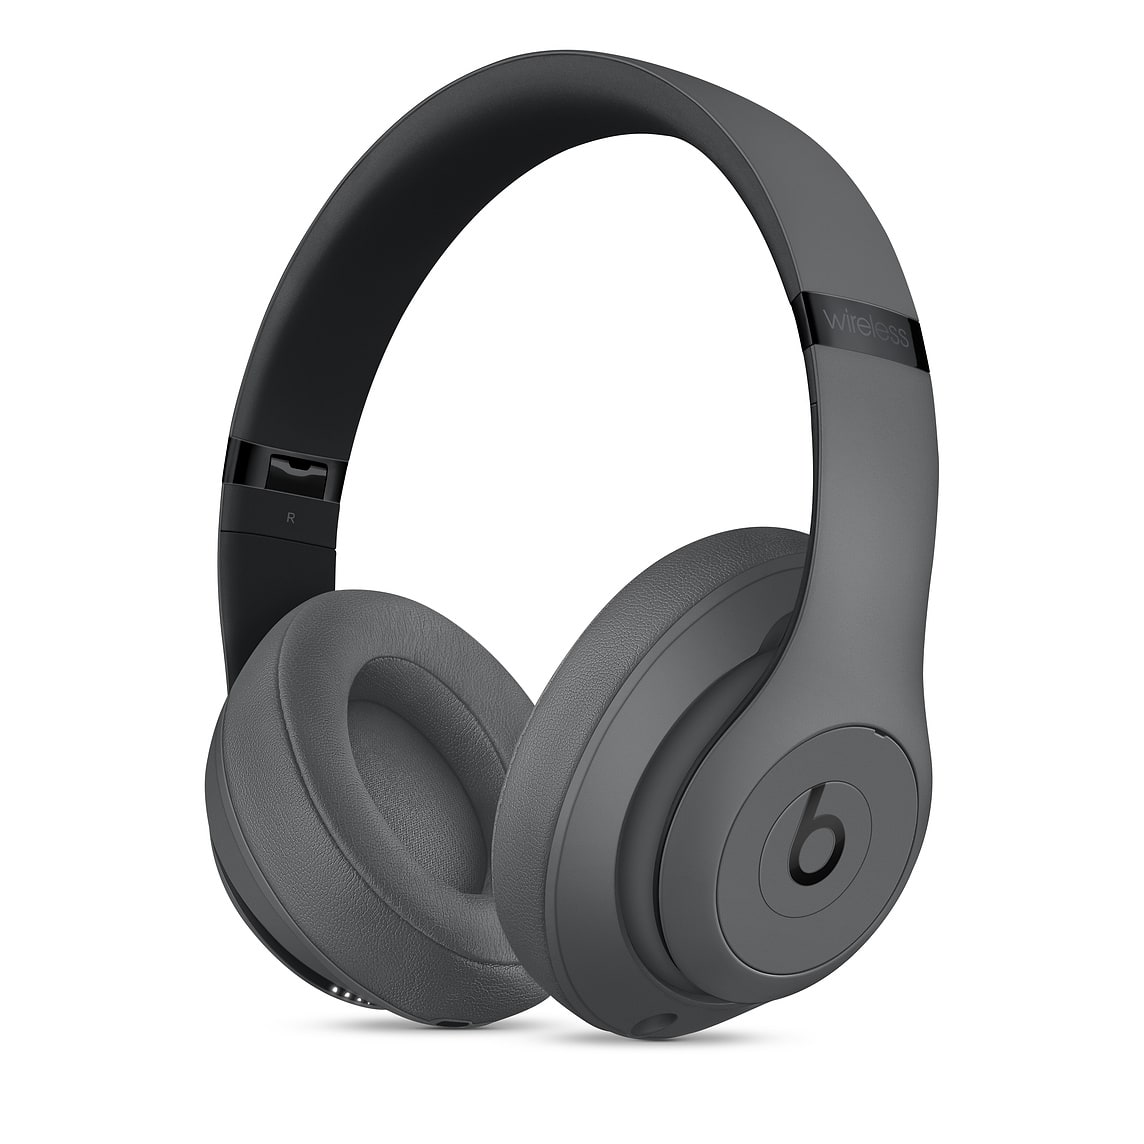 Beats by Dr. Dre - Beats Studio³ Wireless Noise Canceling Headphones + Free Store Pickup $199.99